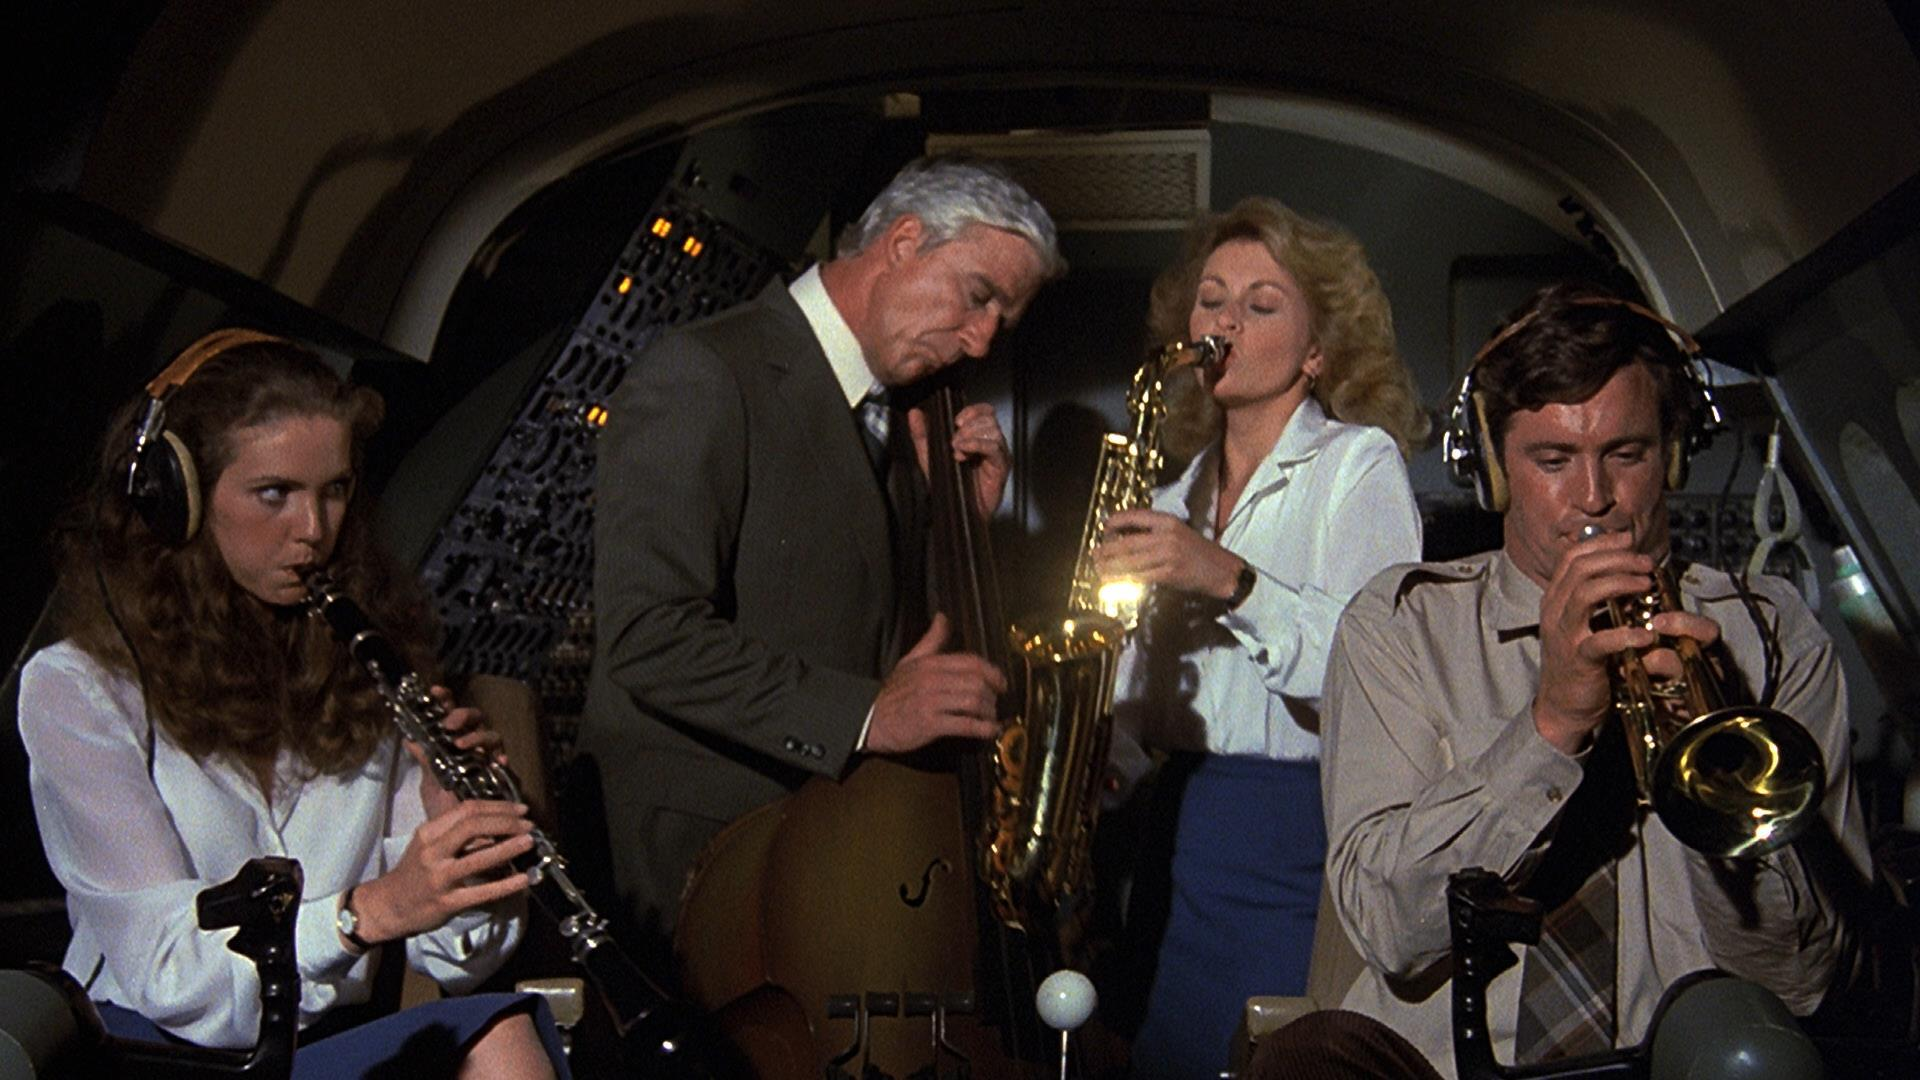 Julie Hagerty, Leslie Nielsen, Lorna Patterson, and Robert Hays playing jazz in the cockpit in Airplane!